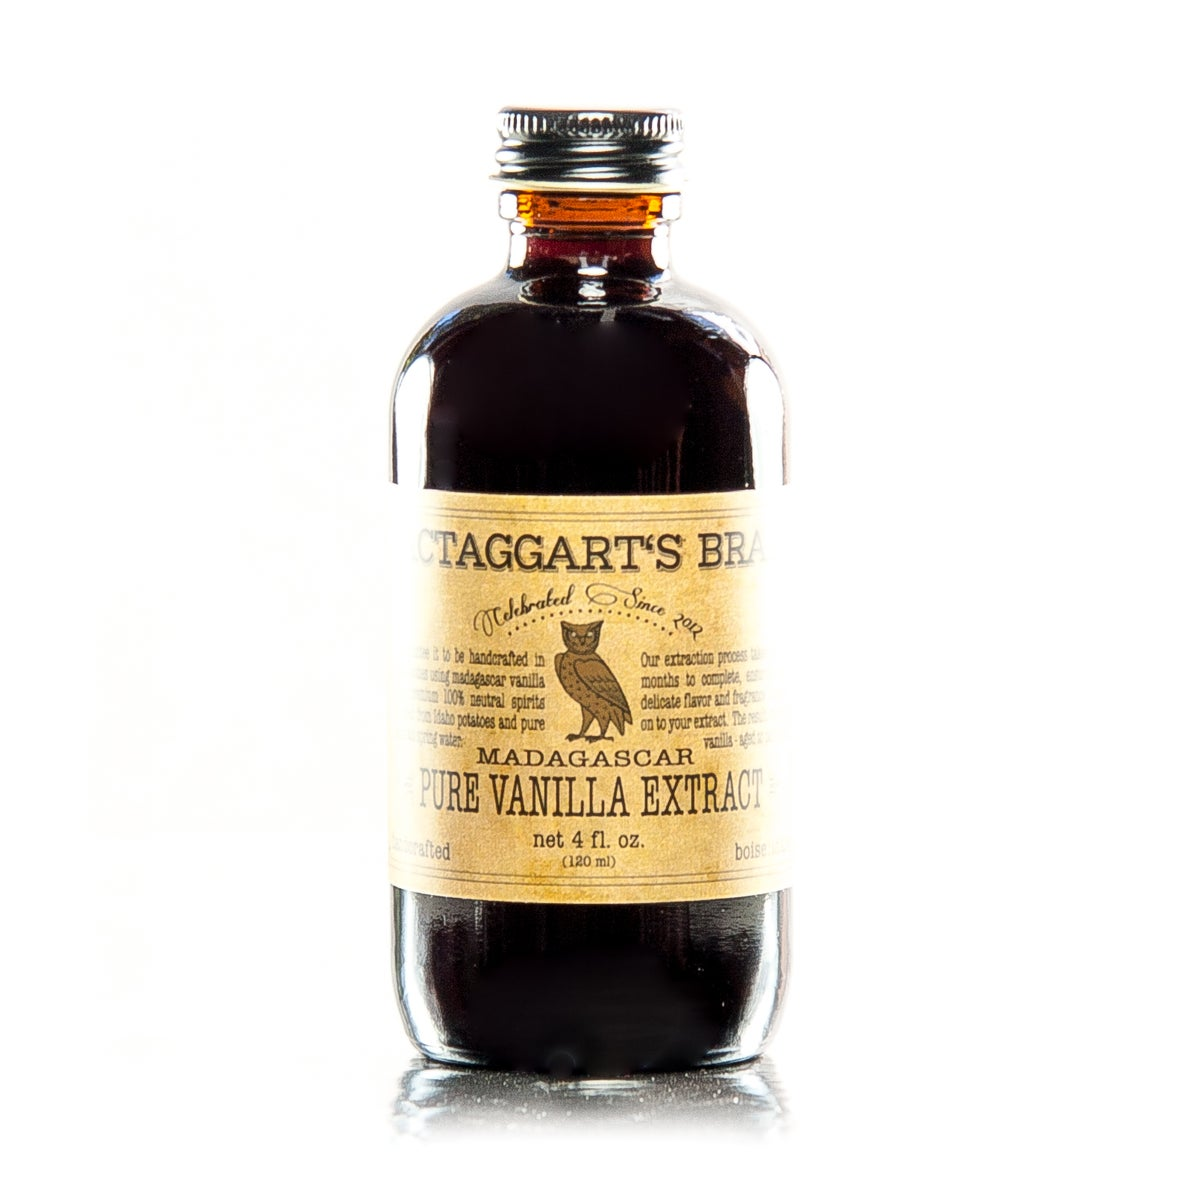 Pure Madagascar Vanilla Extract / MacTaggart's Brand